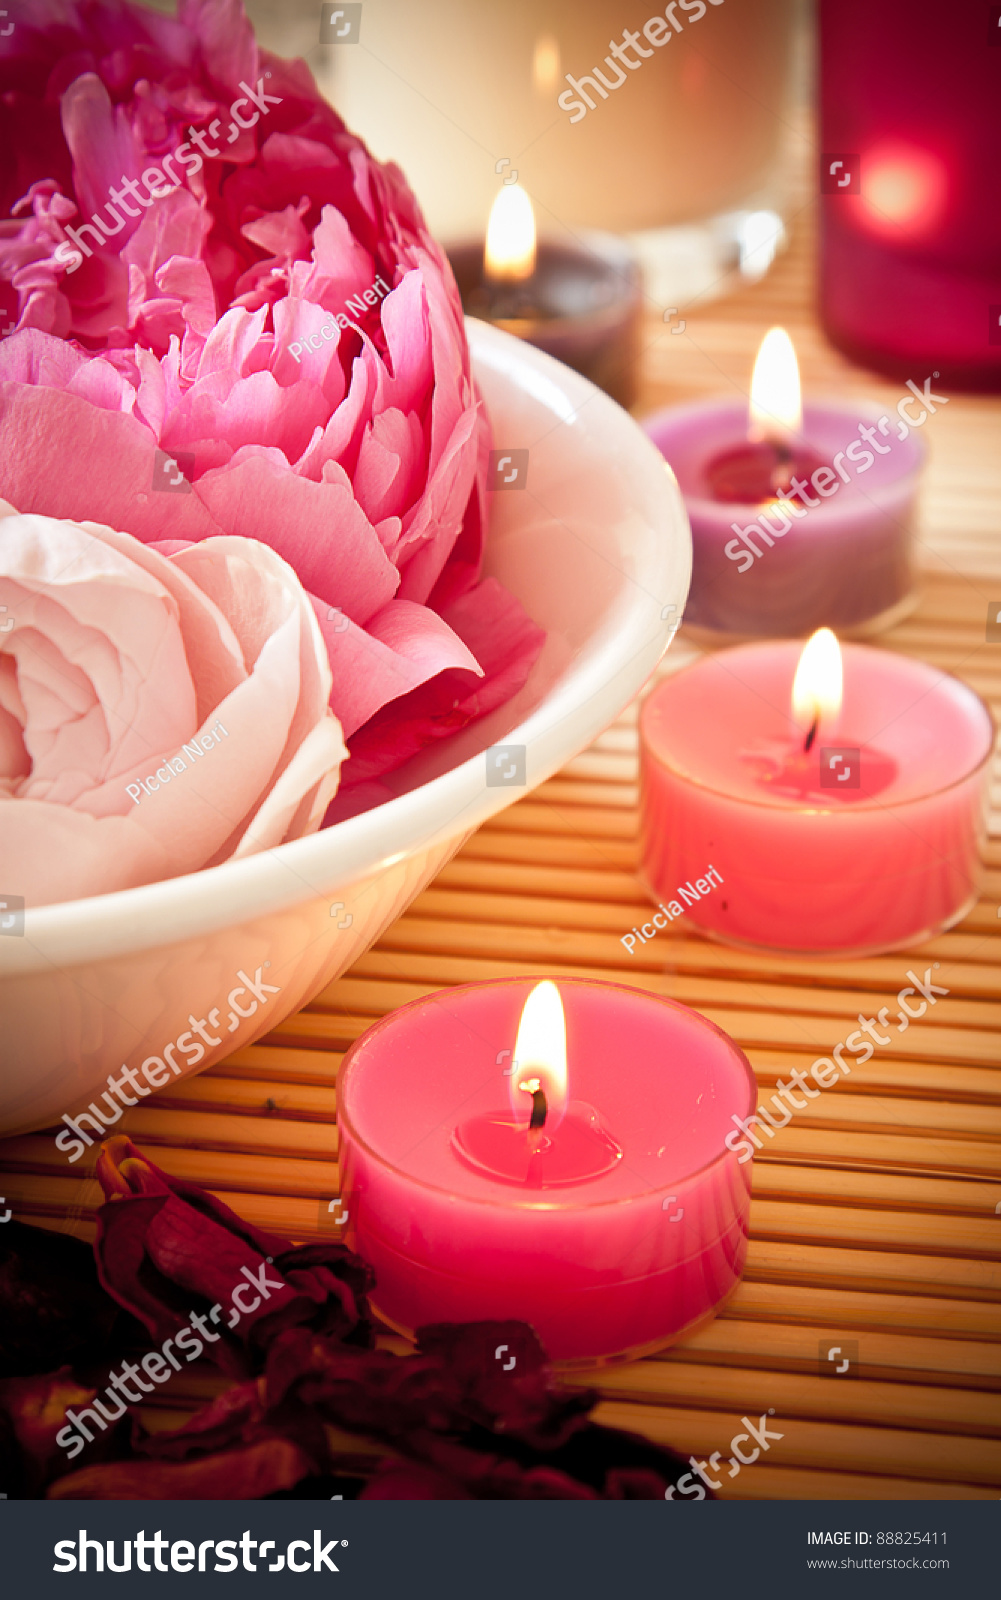 Candle flowers images candles flowers and pebbles